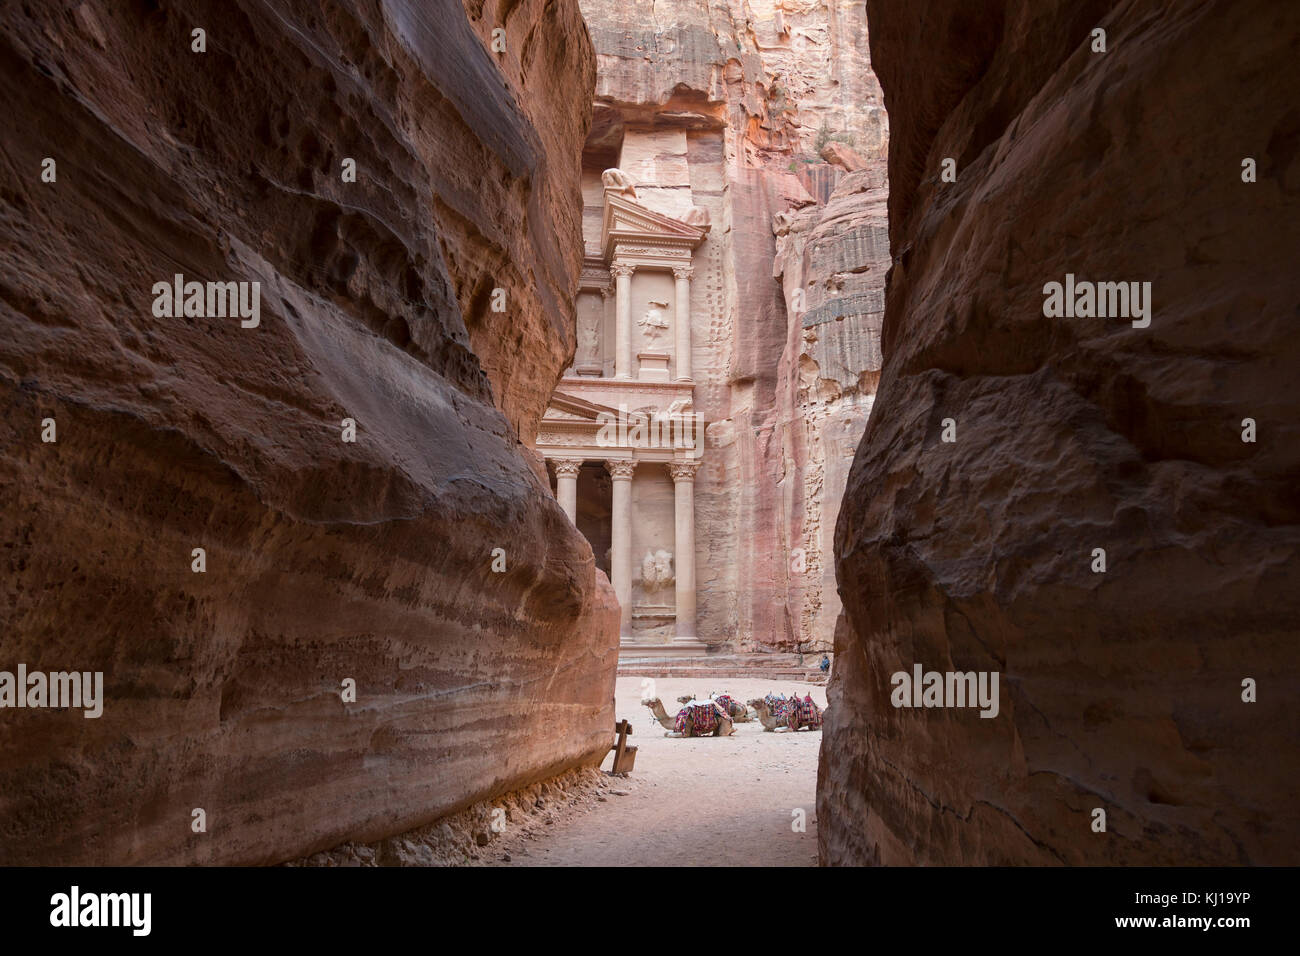 View from Siq on entrance of City of Petra, Khazneh in the background, Jordan - Stock Image